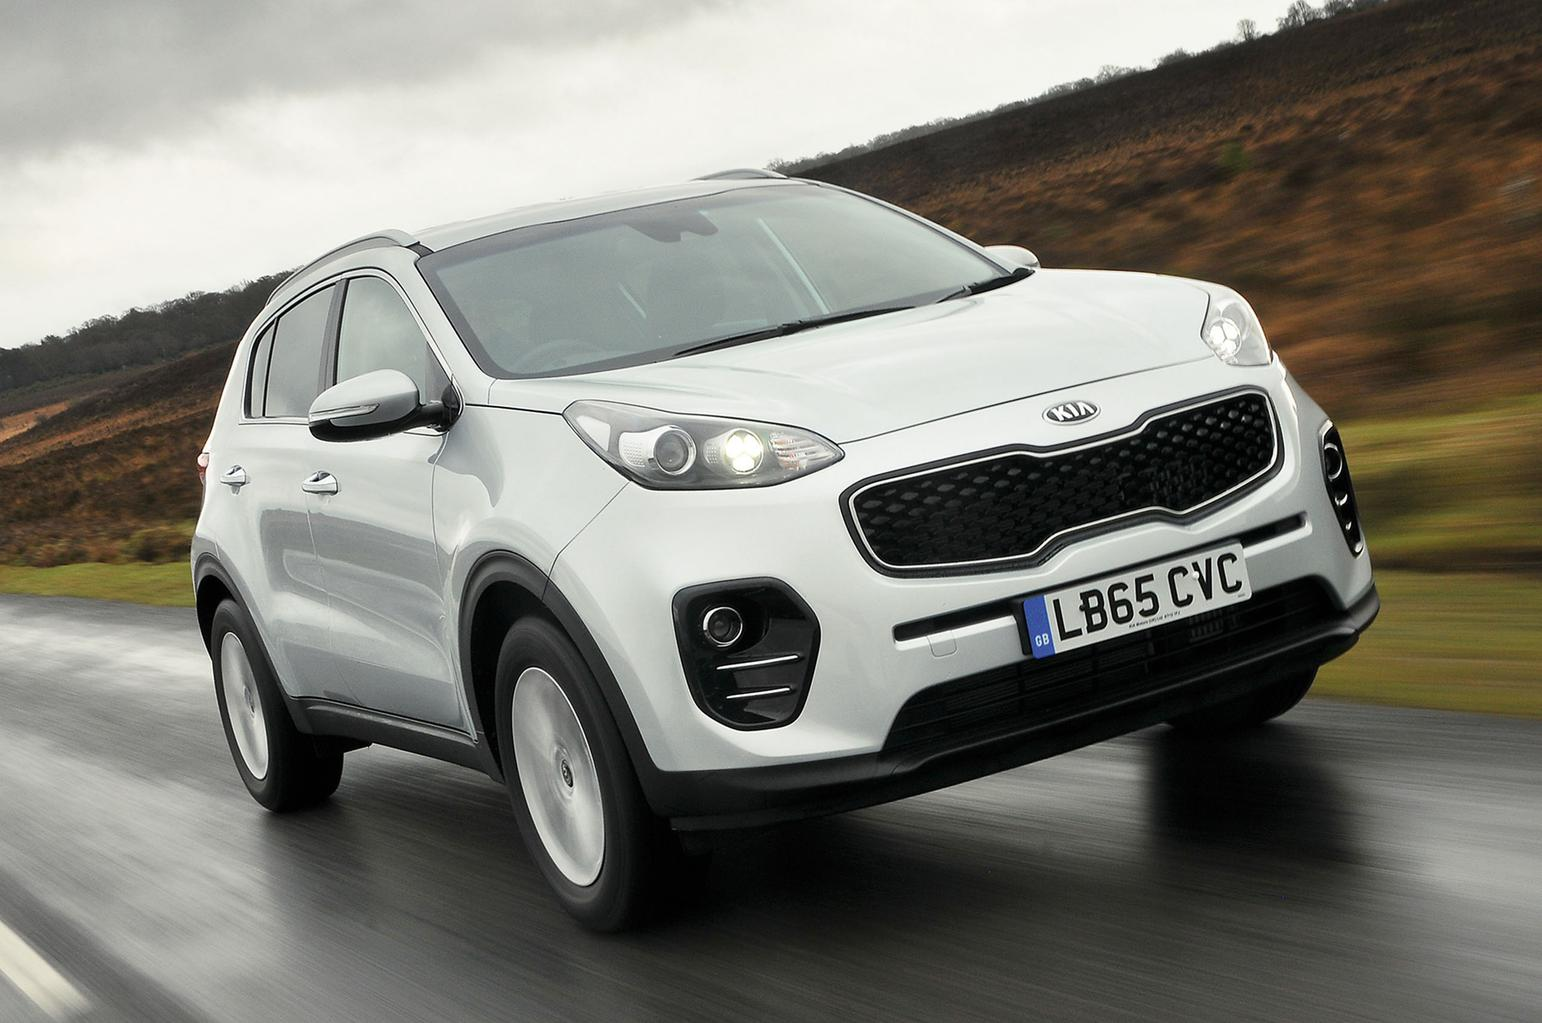 The safest SUVs and crossovers on sale today